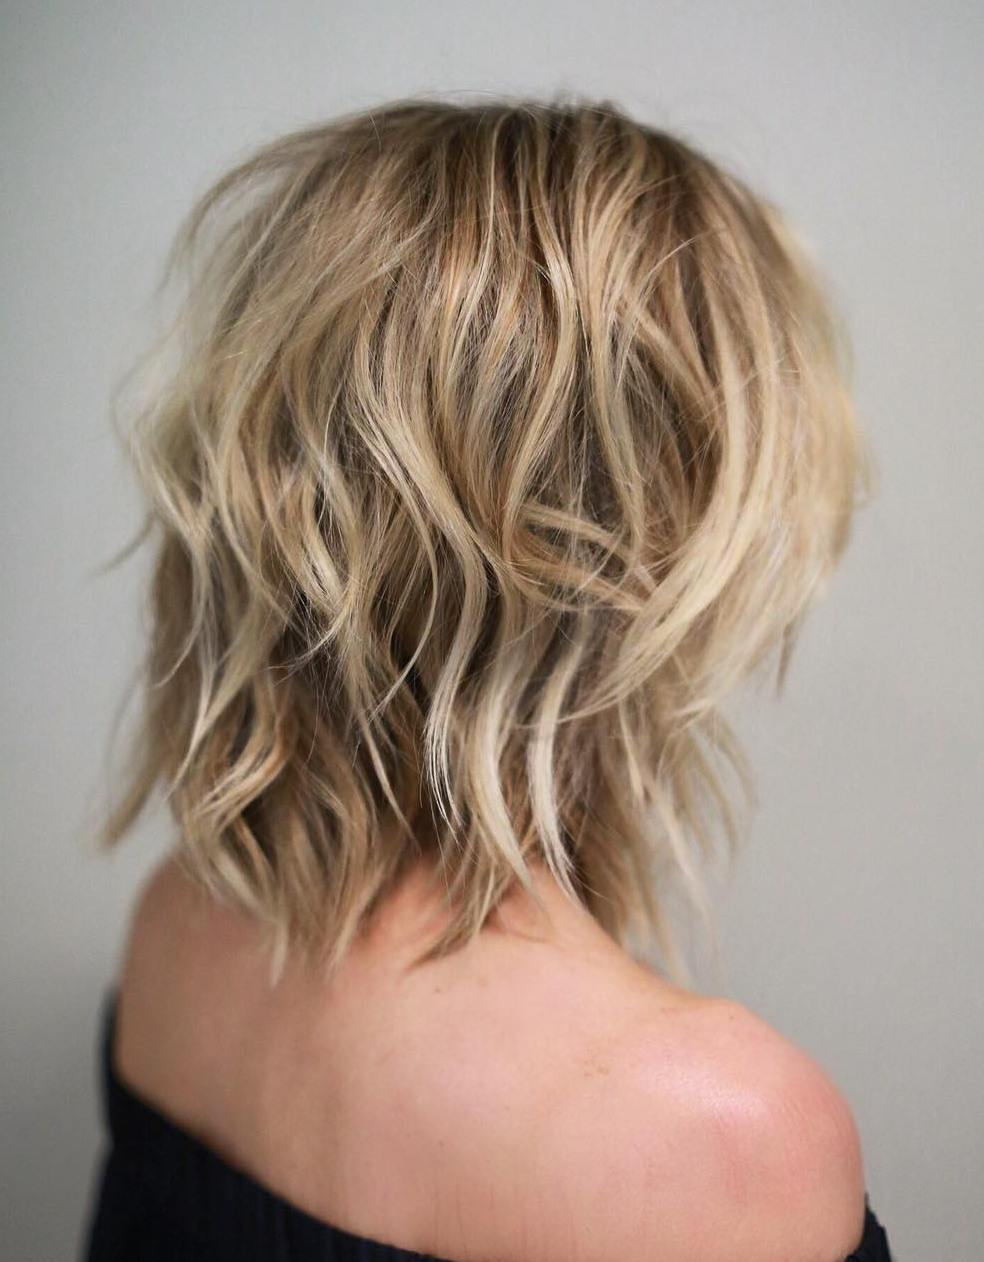 Terrific Shag Haircuts And Hairstyles In 2016 Therighthairstyles Short Hairstyles For Black Women Fulllsitofus